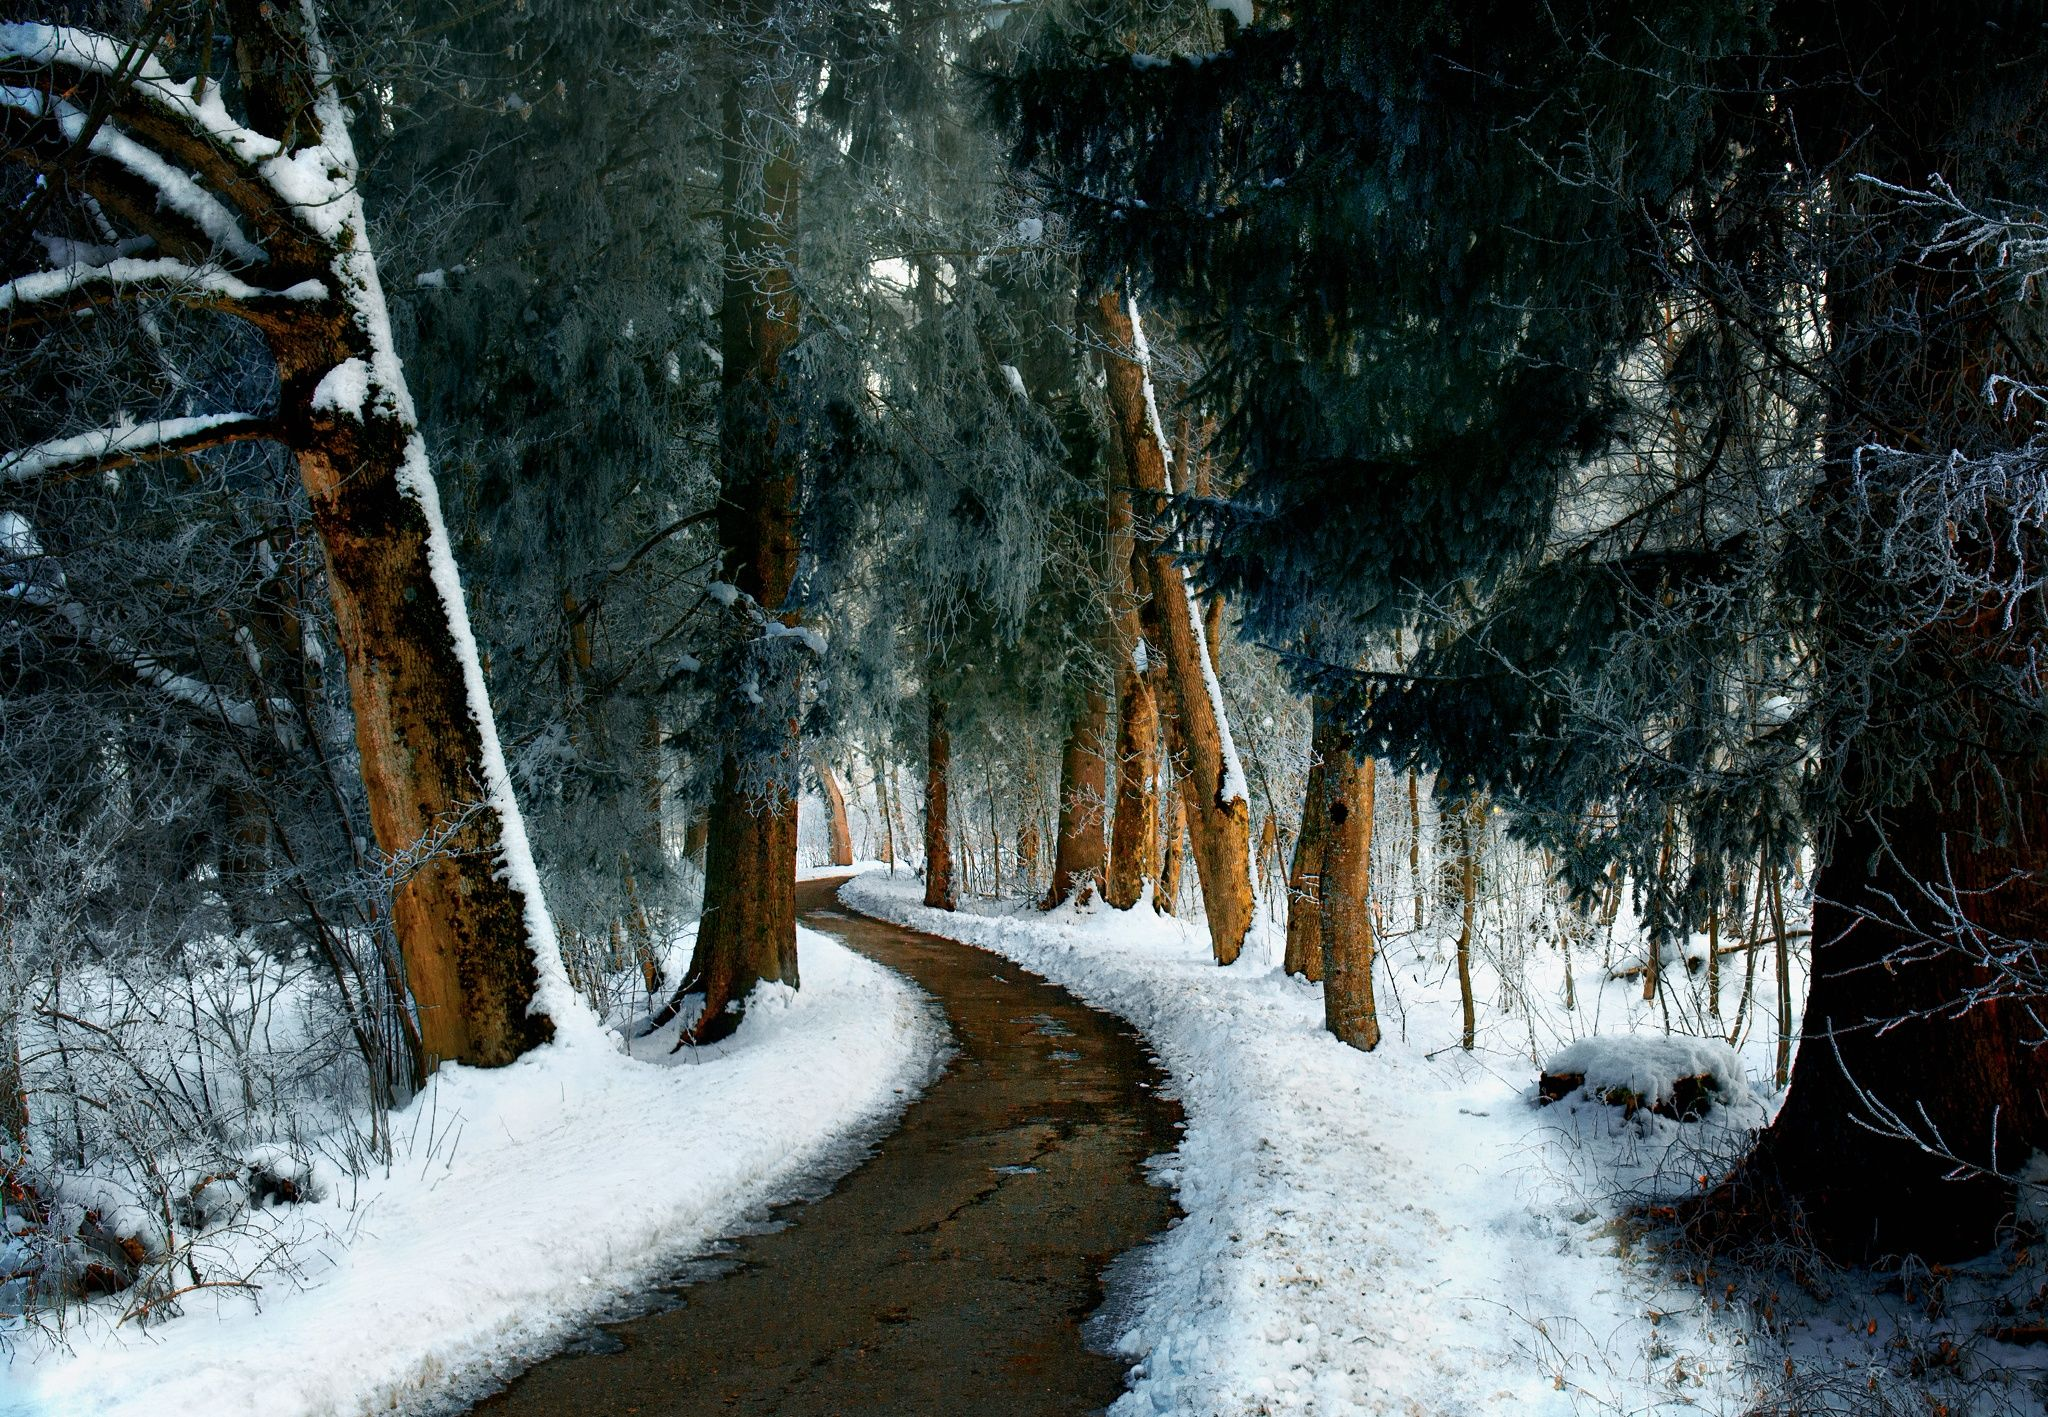 The path is cleared by Gabriele Wahl on 500px